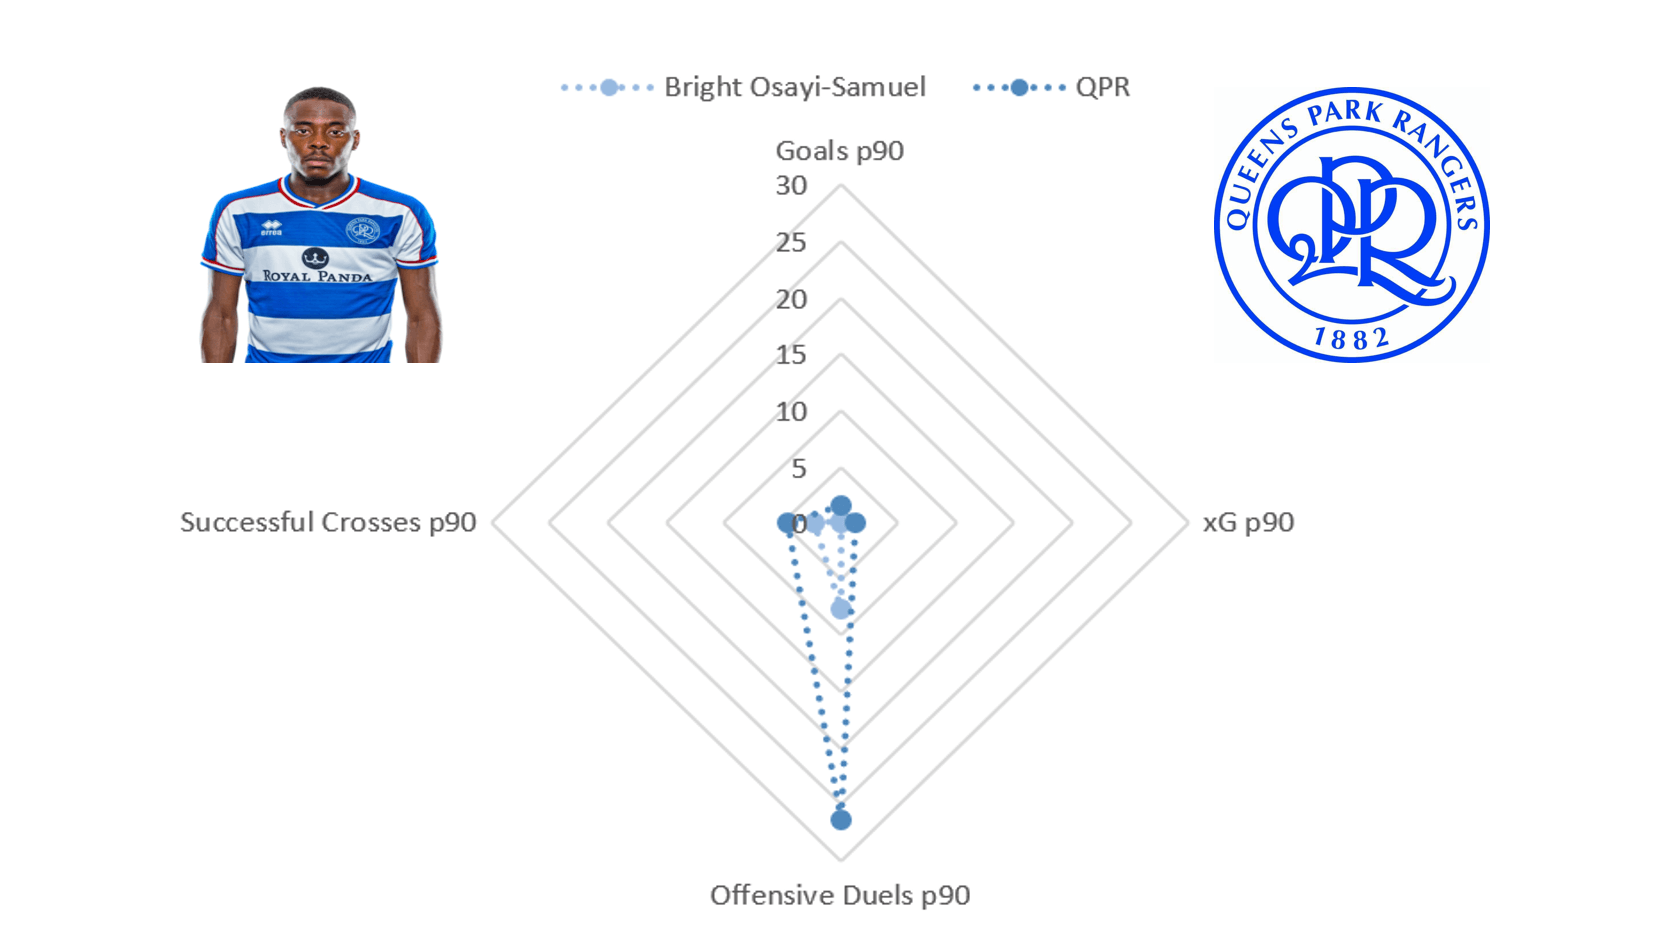 Bright Osayi-Samuel 2019/20 - scout report - tactical analysis tactics